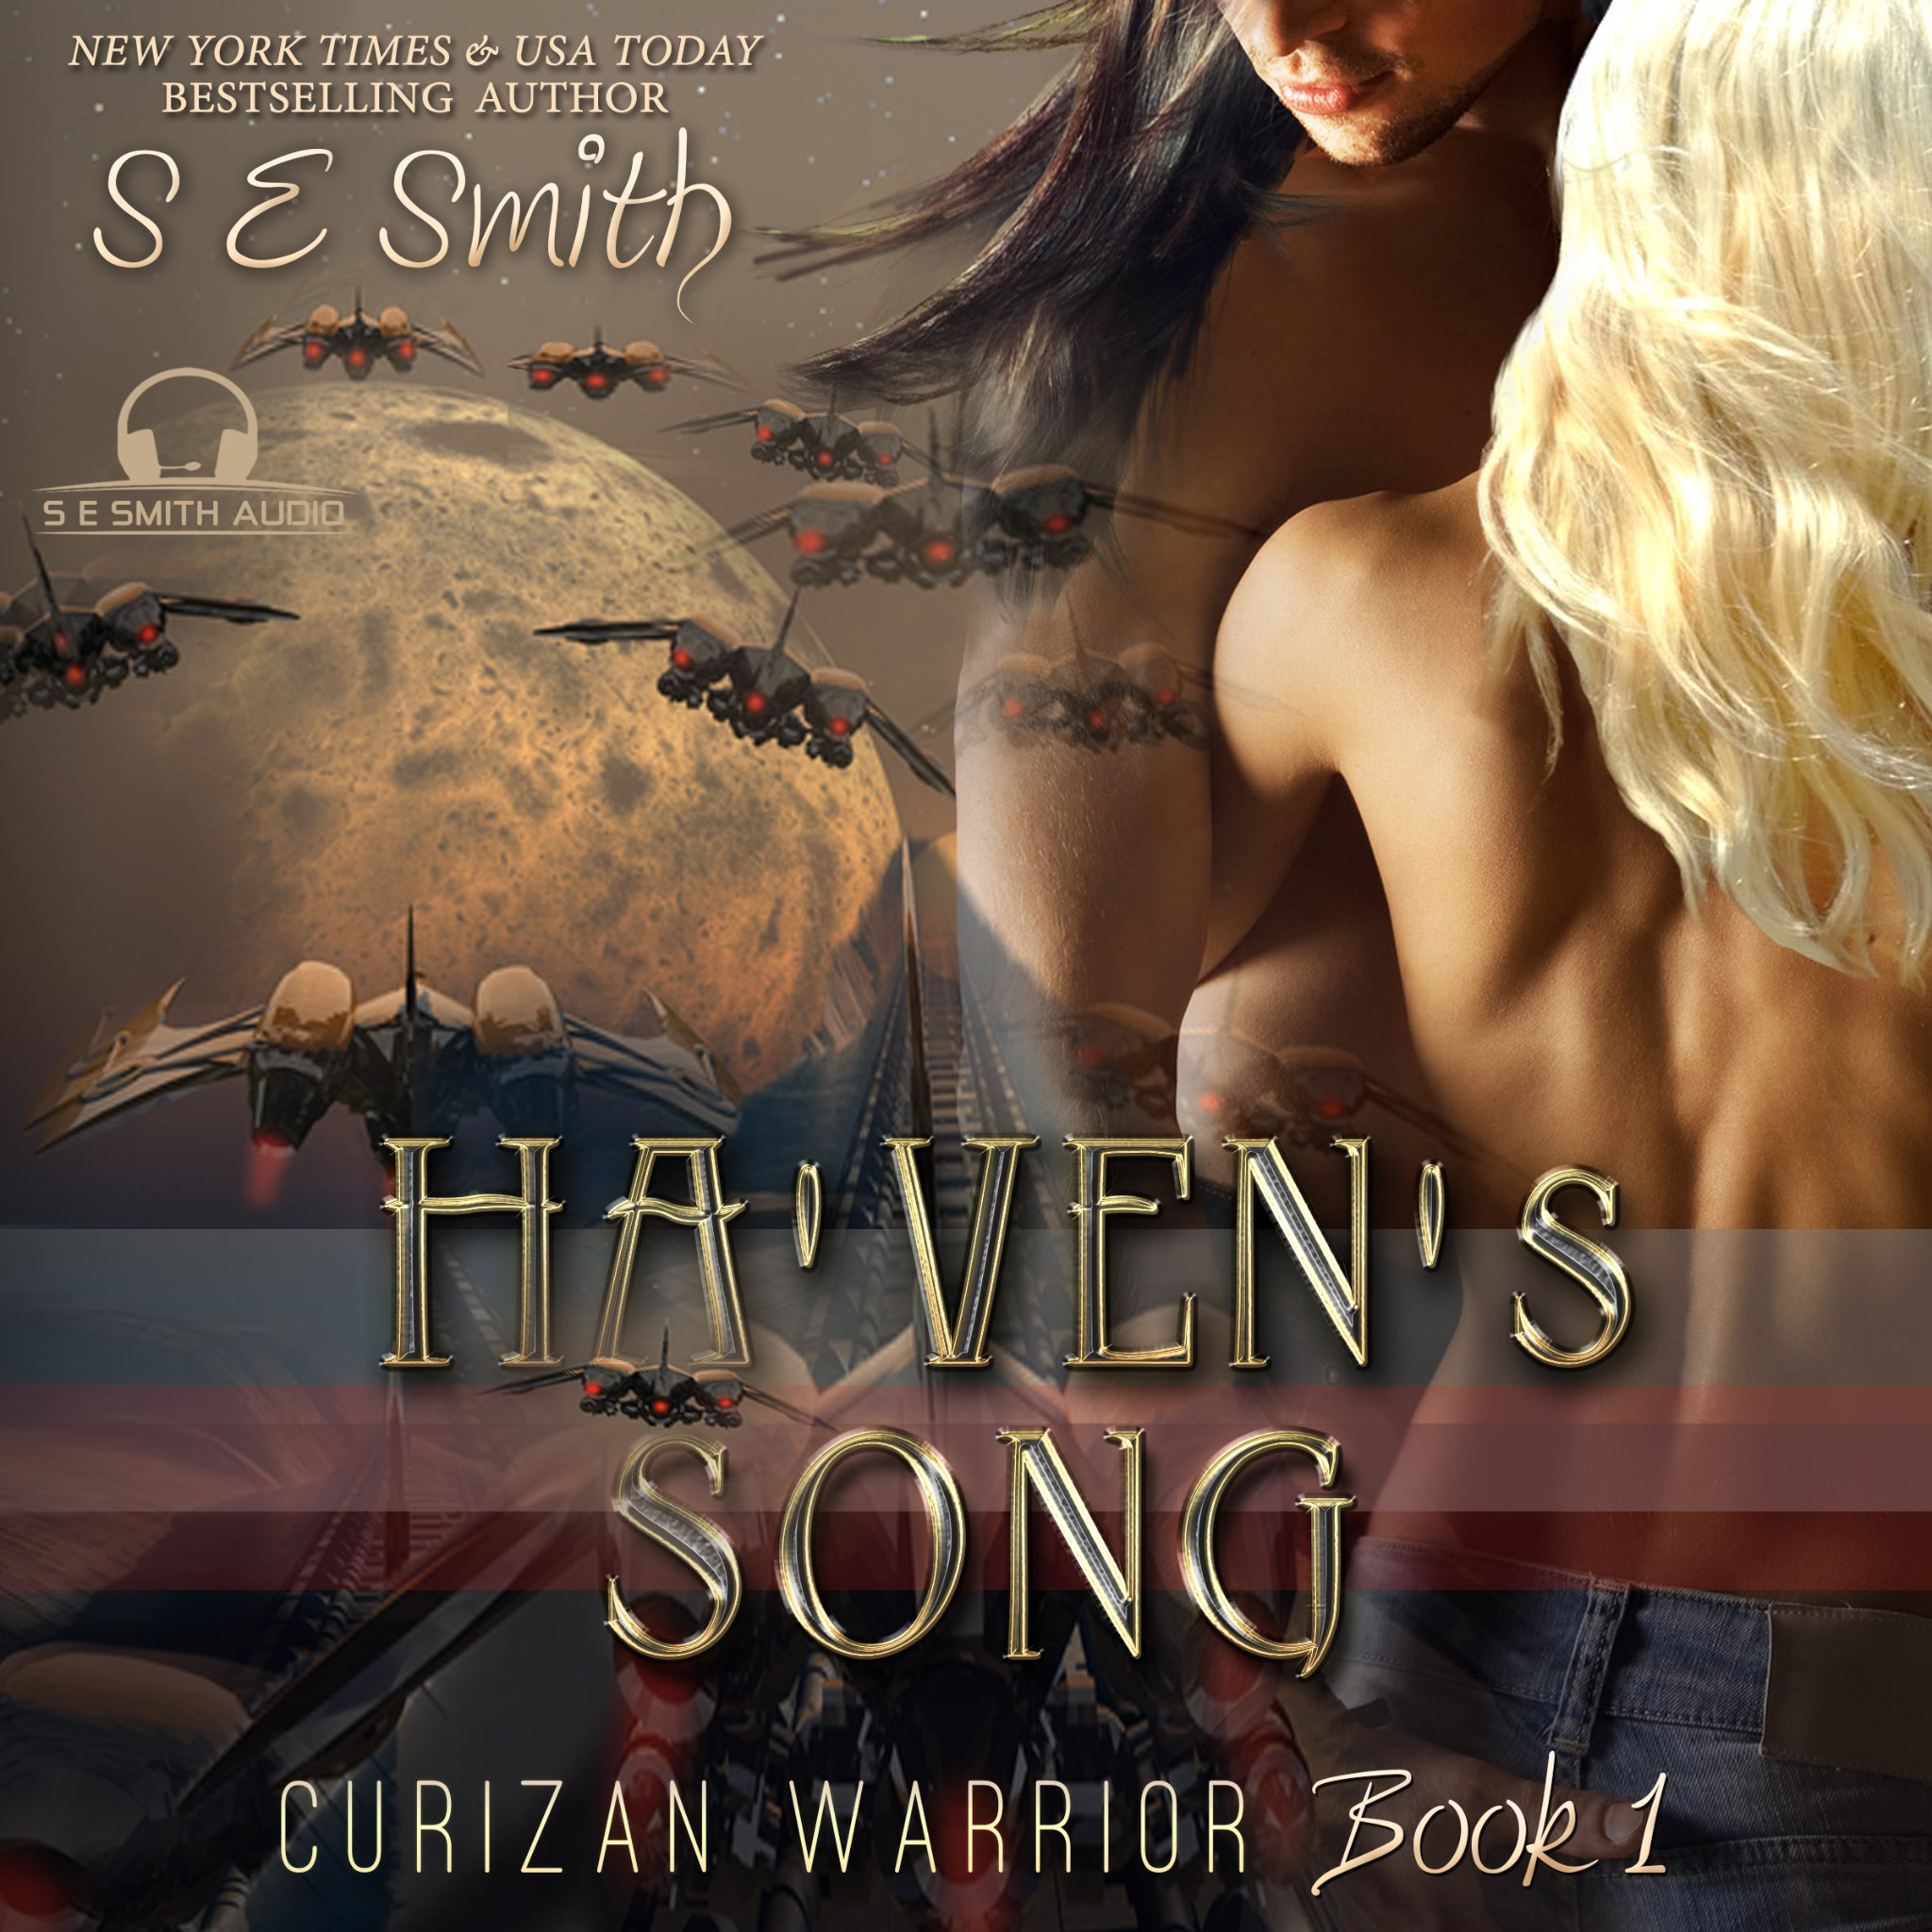 Ha'ven's Song: Curizan Warrior Book 1 (Audiobook CD)